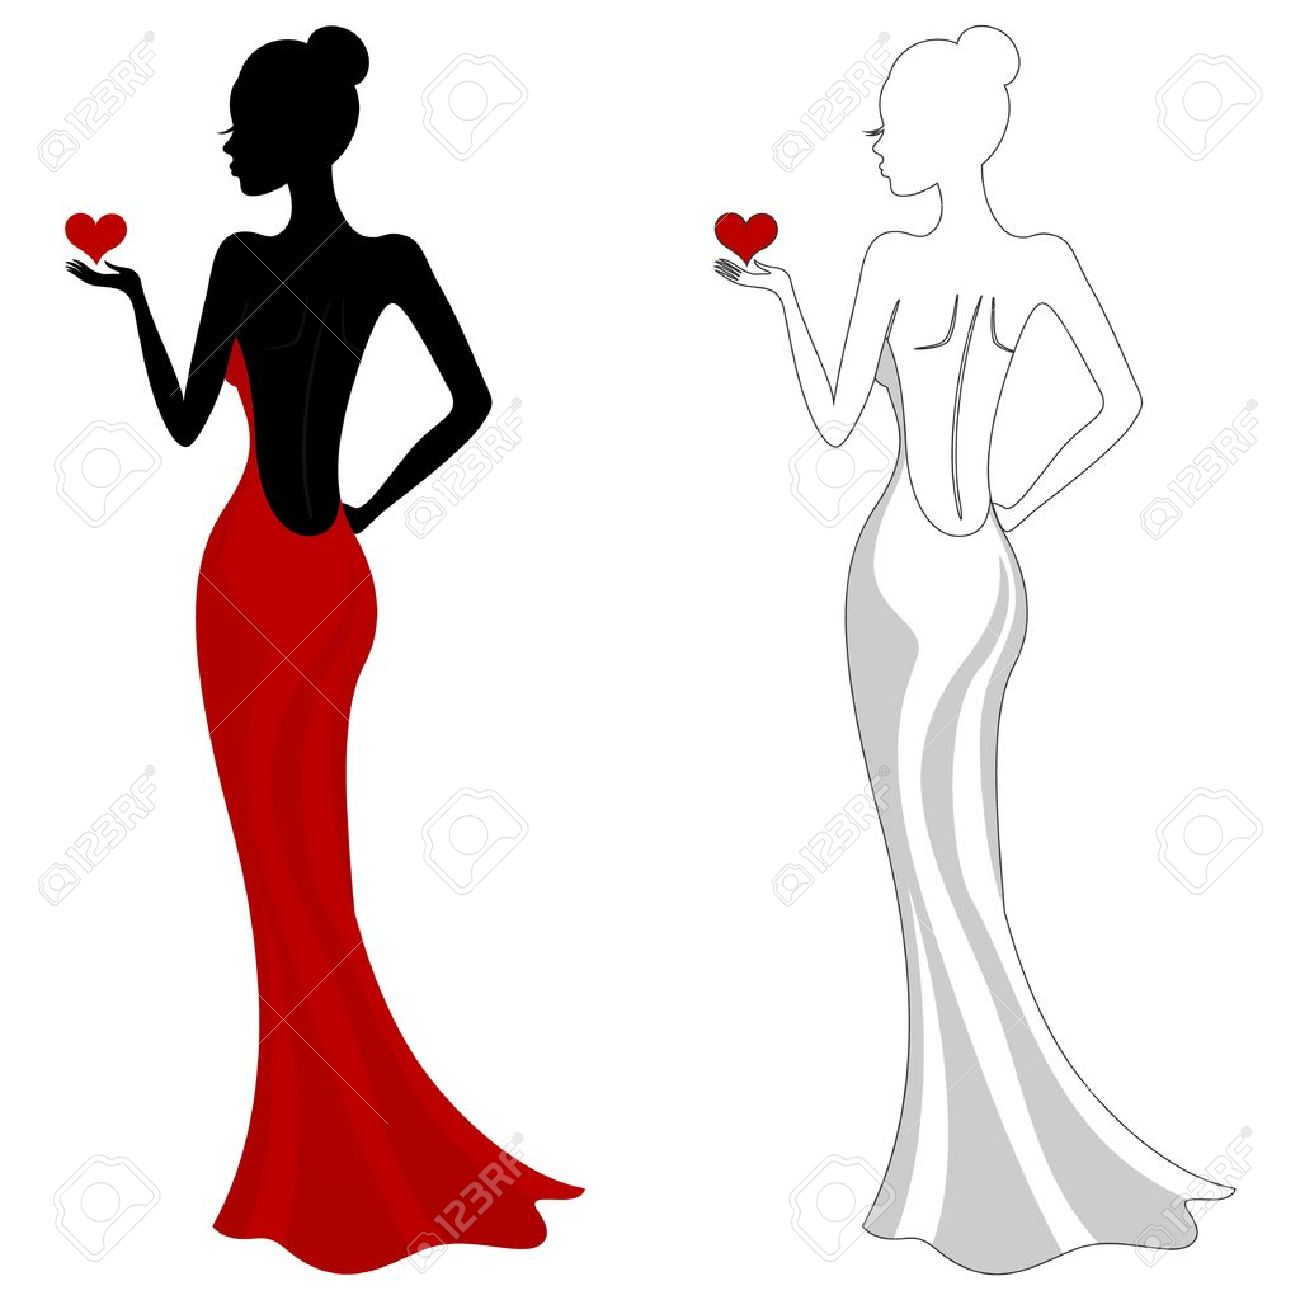 girl in dress clipart - Clipground